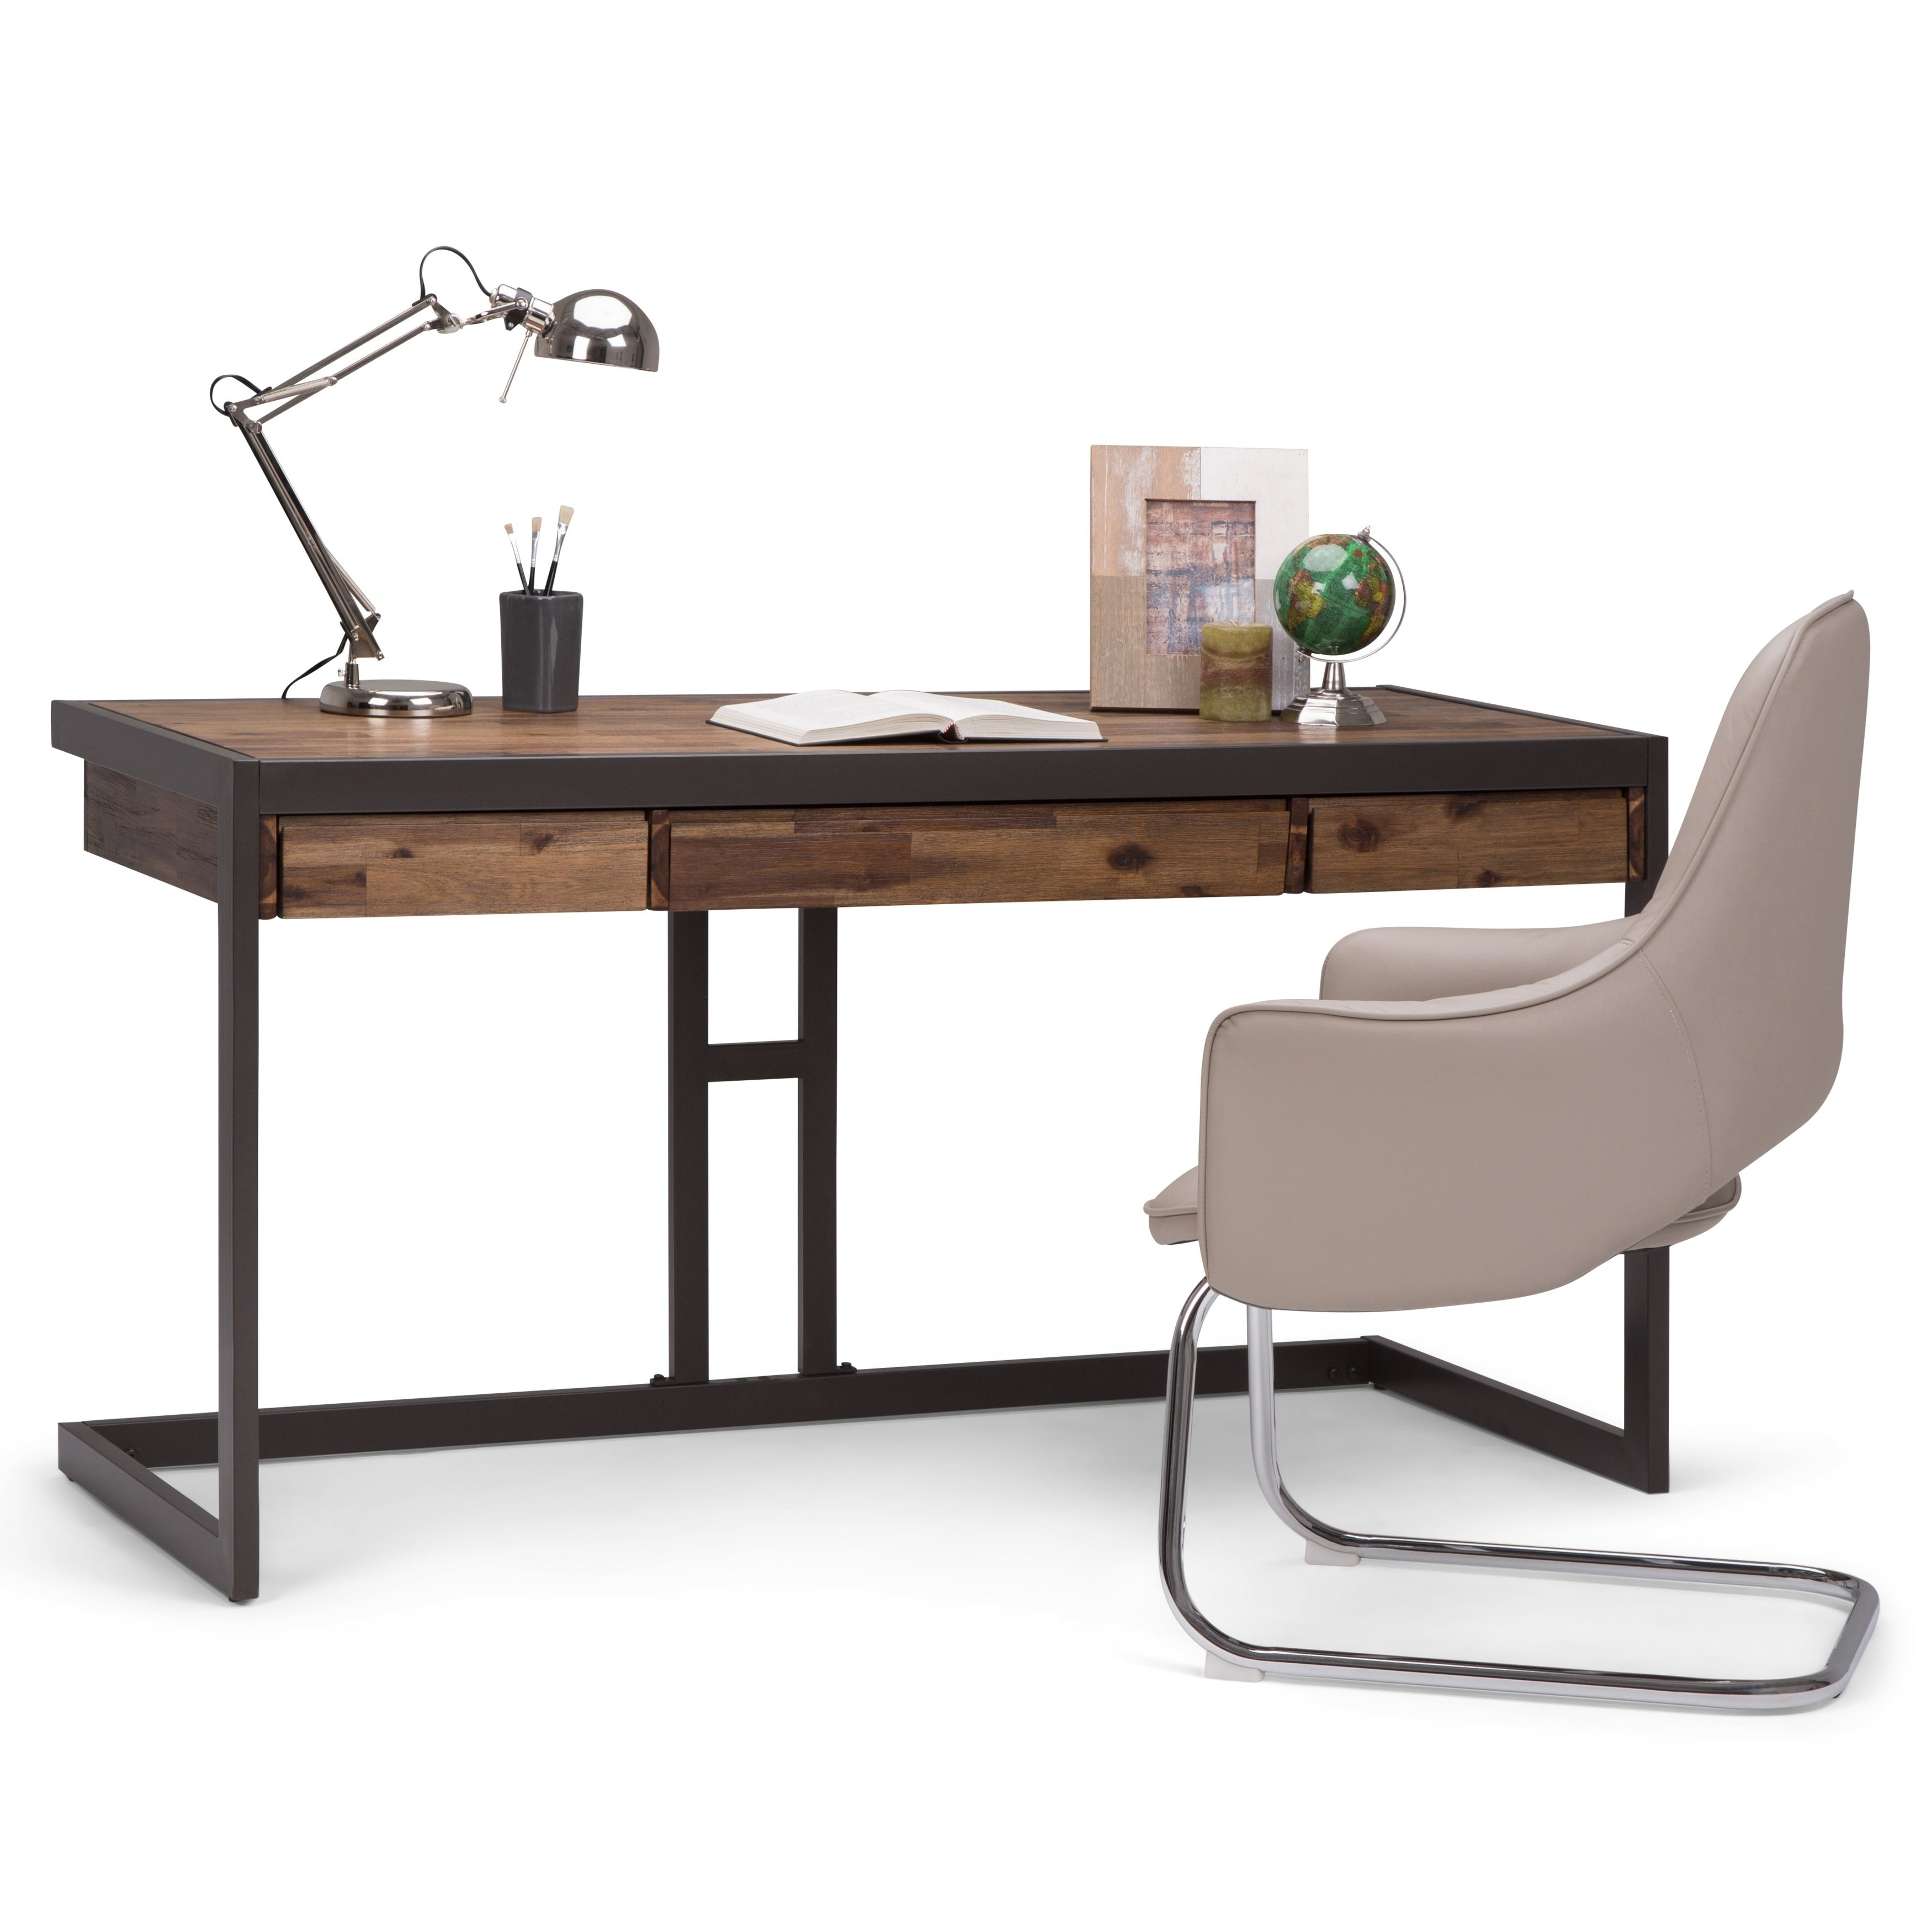 WYNDENHALL Cecilia Solid Acacia Wood Modern Industrial 60 inch Wide Writing  Office Desk